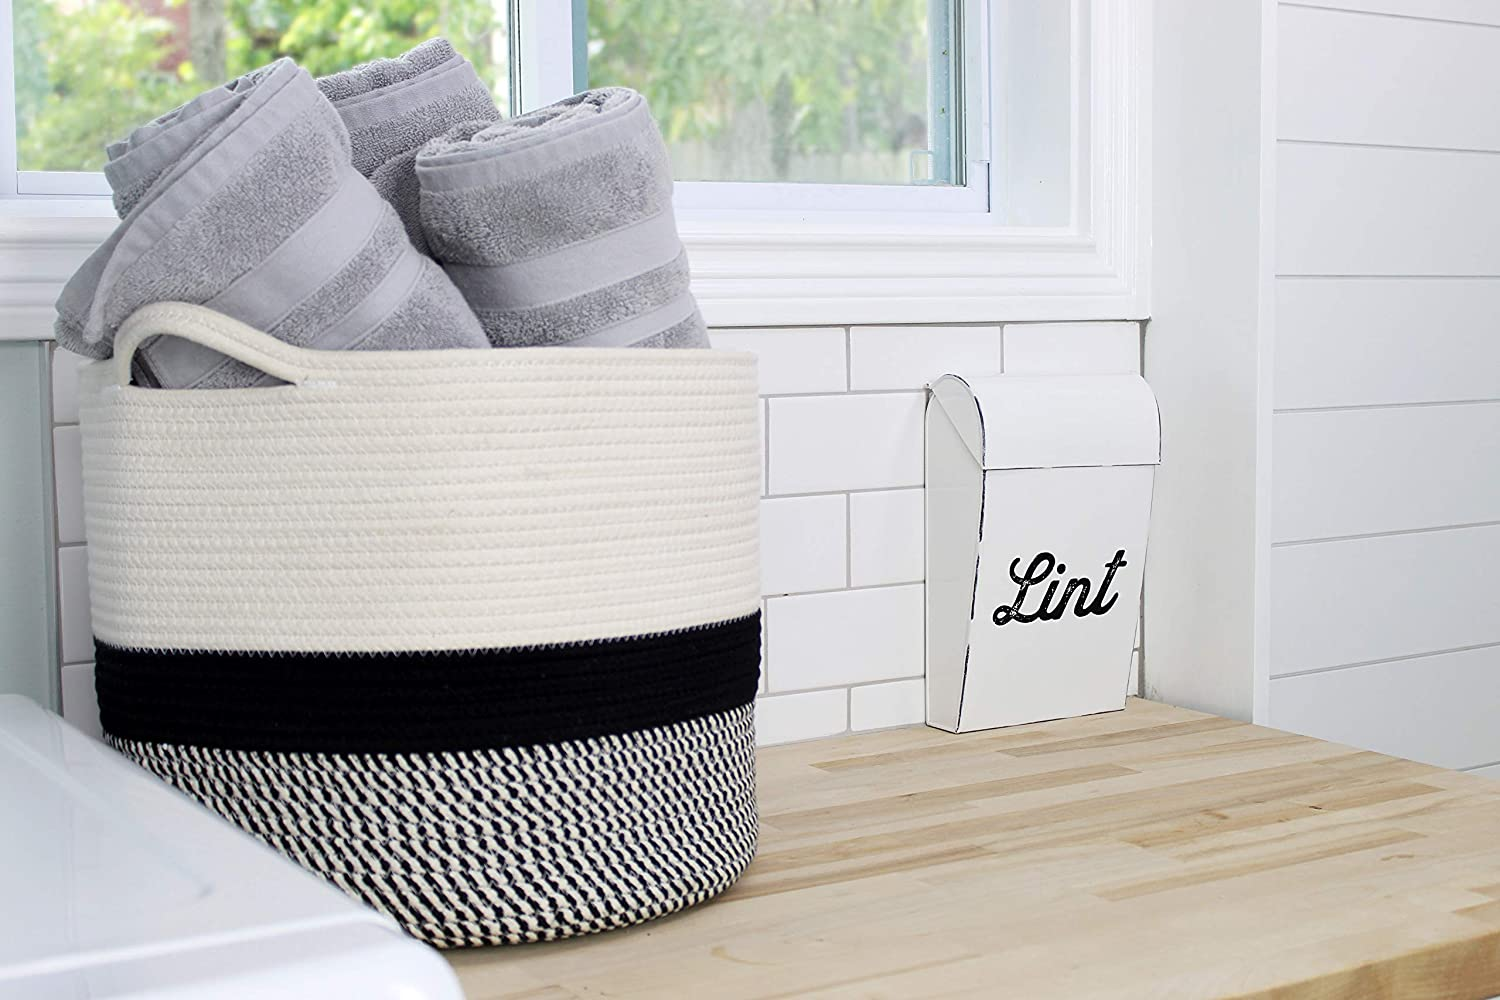 AuldHome Boho Woven Rope Basket Large Black and White Storage Decorative Basket; 13 x 15 x 15 Inches